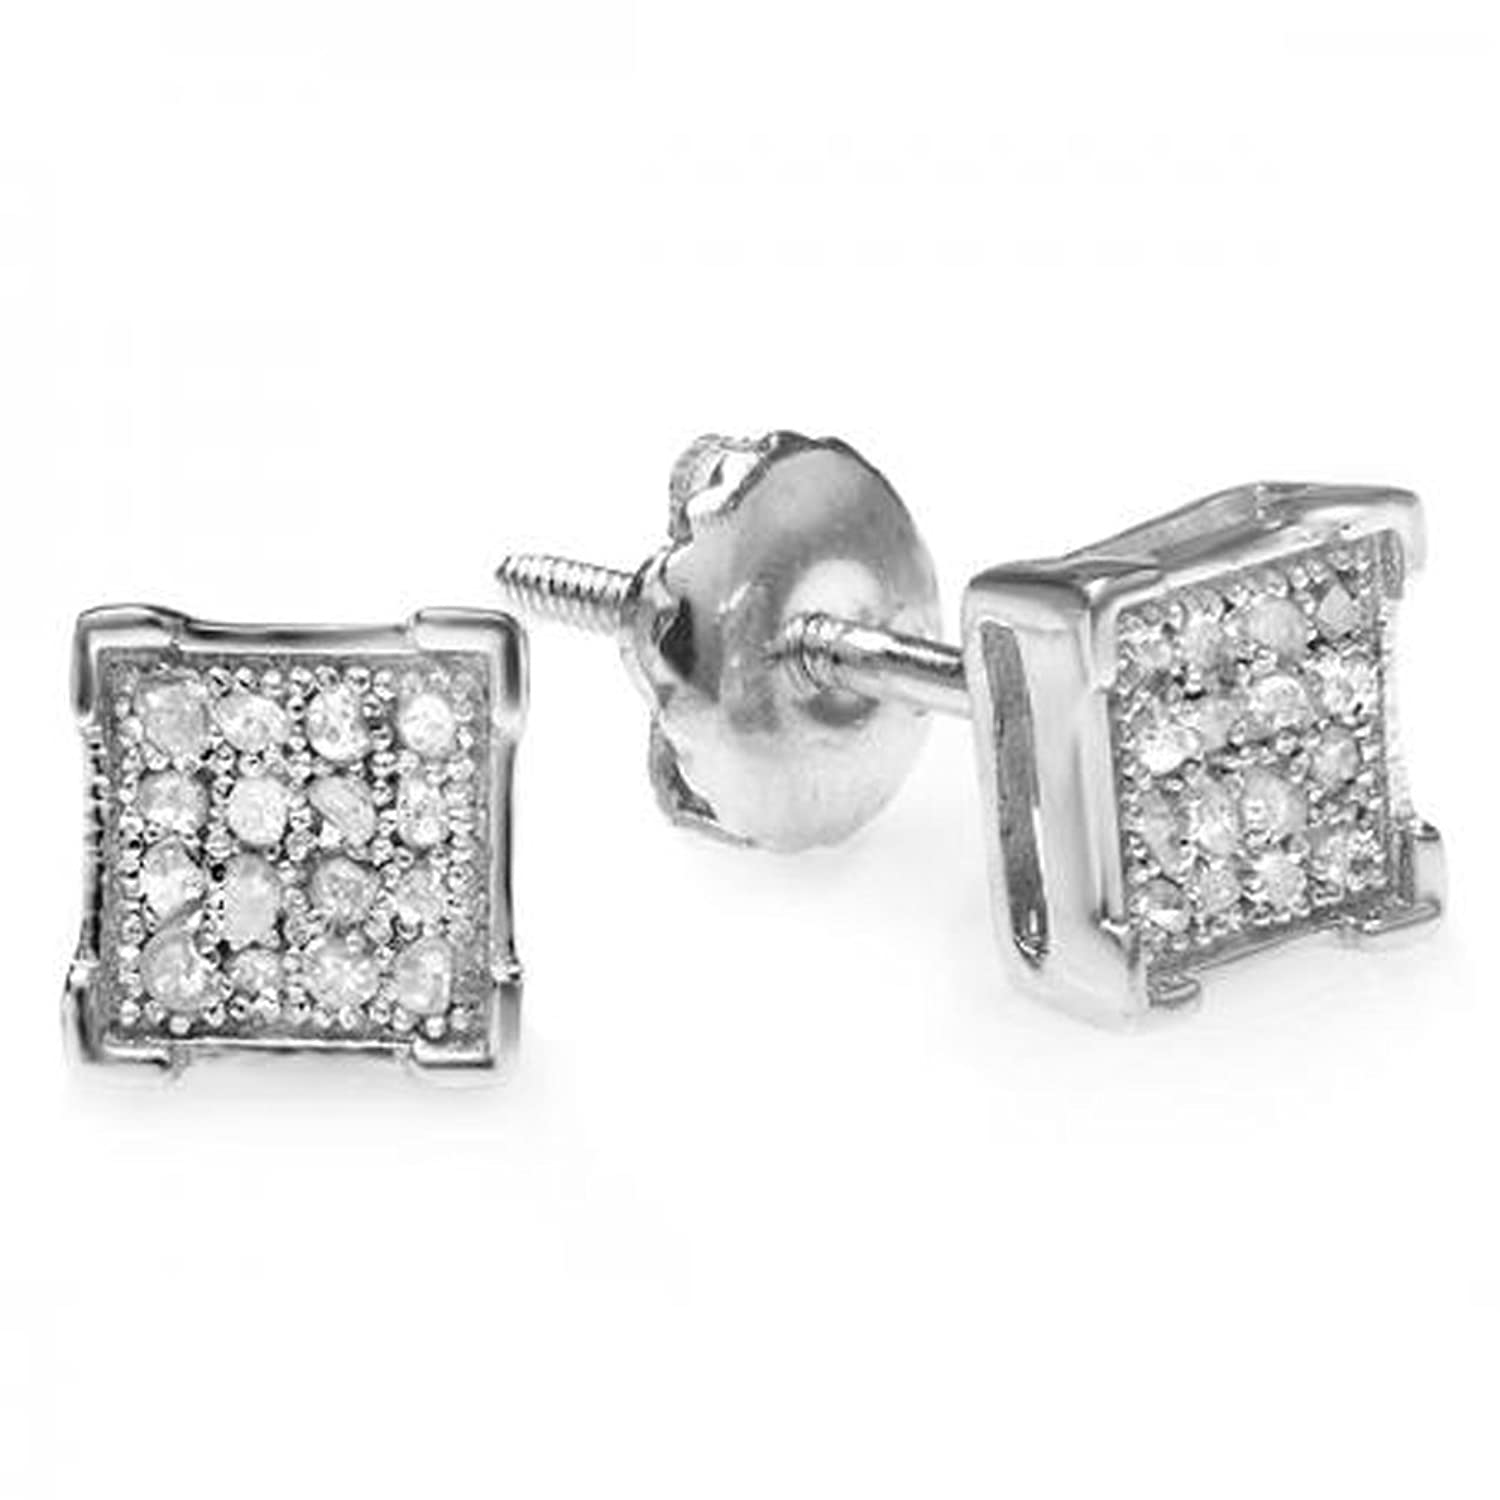 mens designs by real diamond qflbyzn earrings silver paul stud